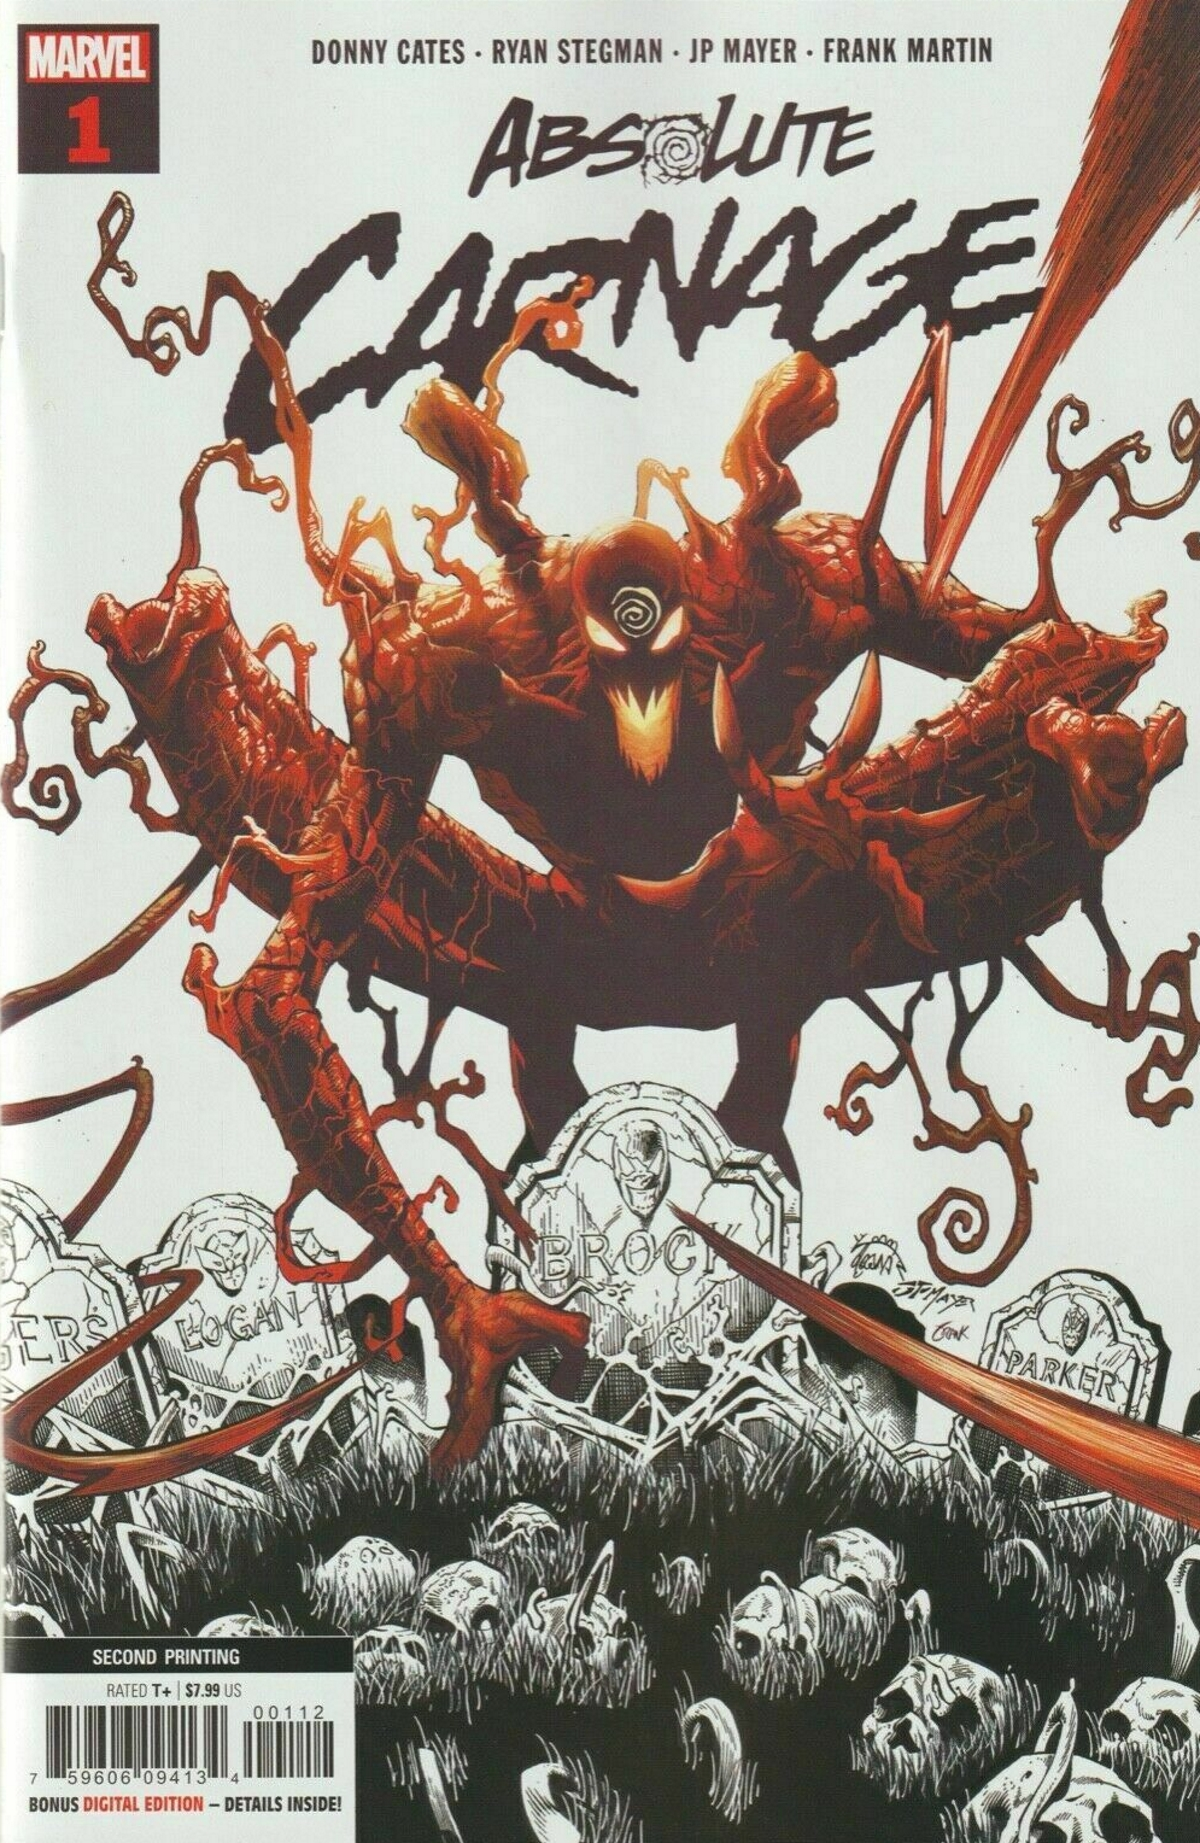 Absolute Carnage #1 Gets 4th Printing, Captain Marvel Gets 3rd…